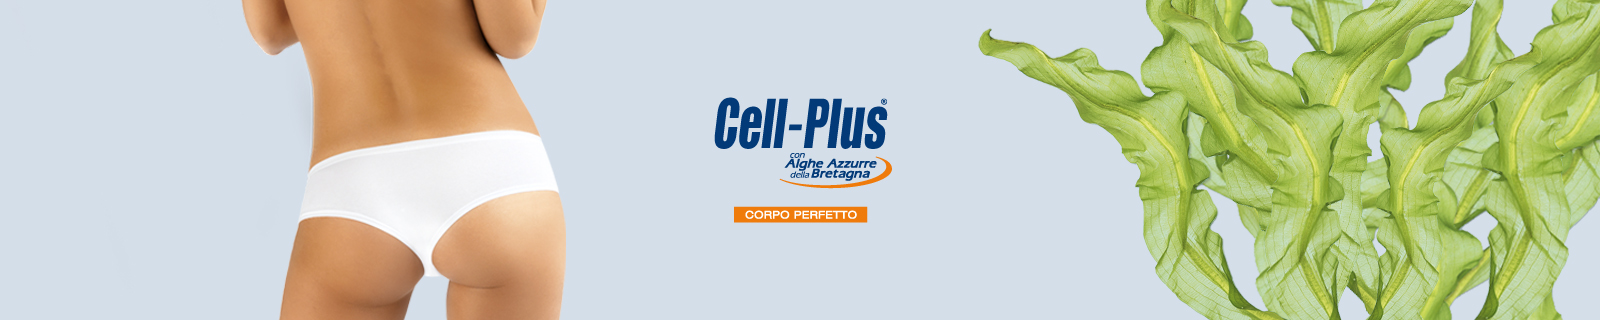 Cell-Plus Crema Gel Crio Drenante